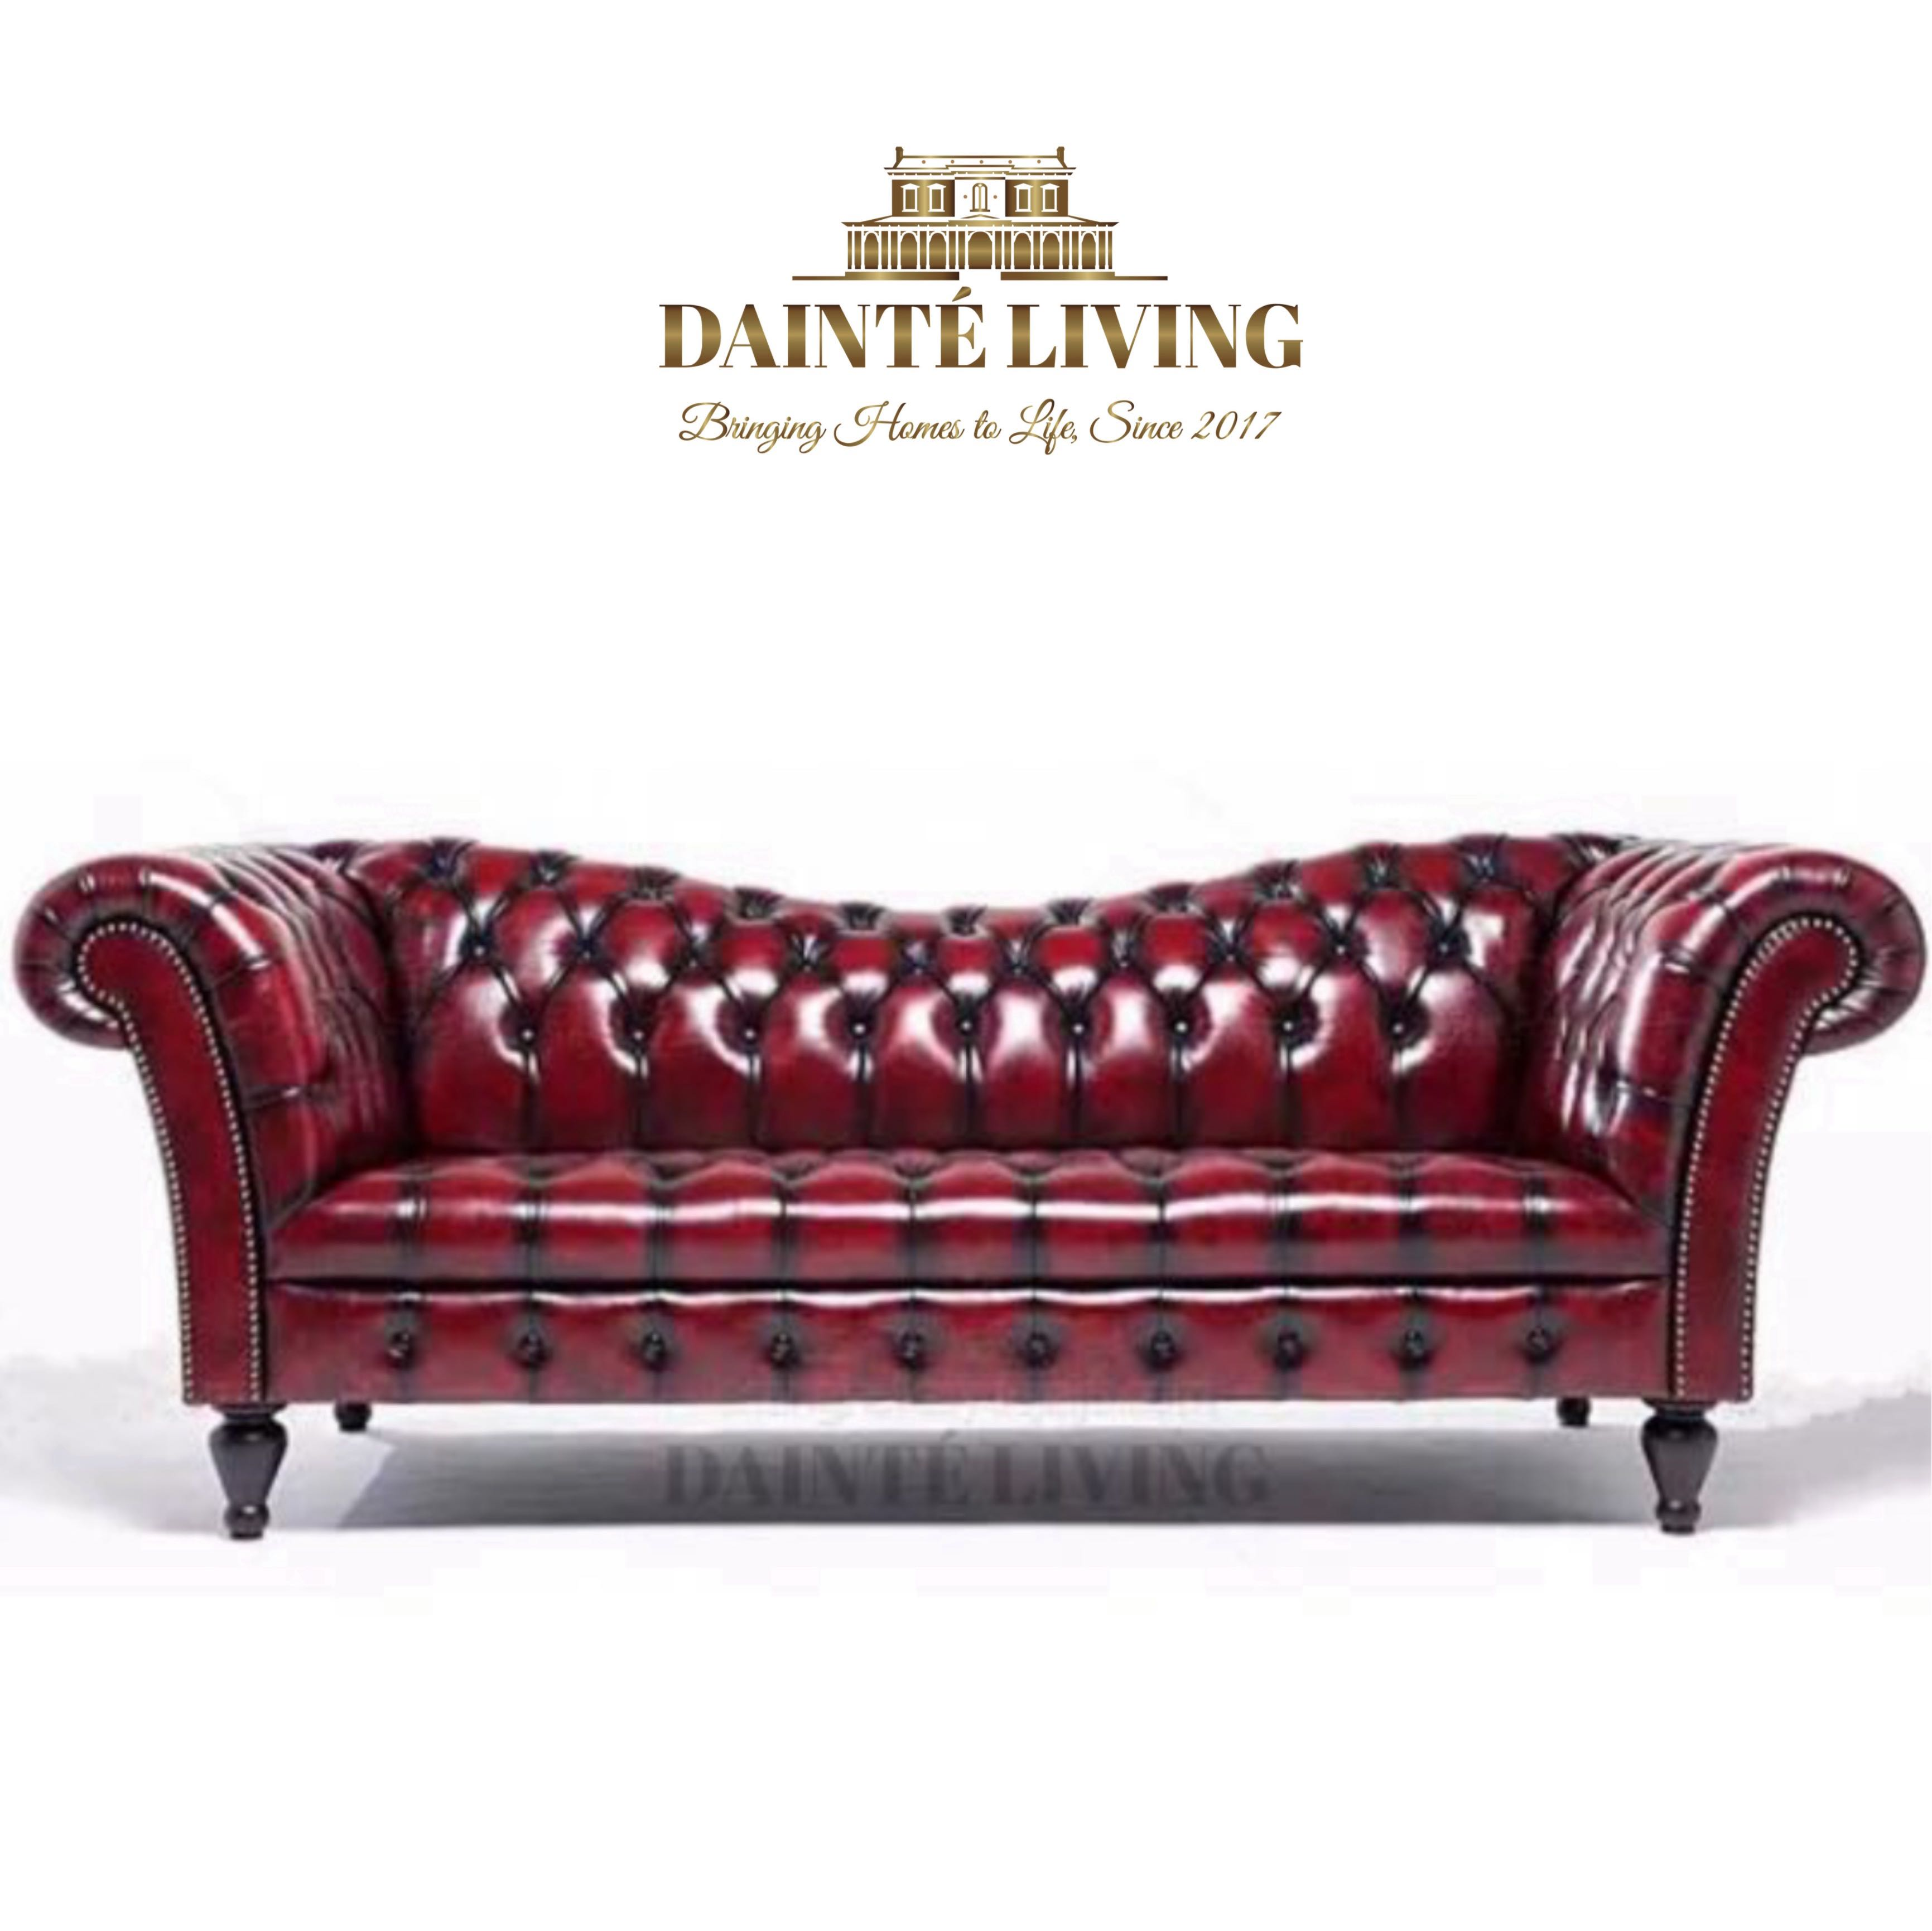 Magnificent Classic Gentlemen American French Chesterfield Tufted Sofa Home Interior And Landscaping Analalmasignezvosmurscom